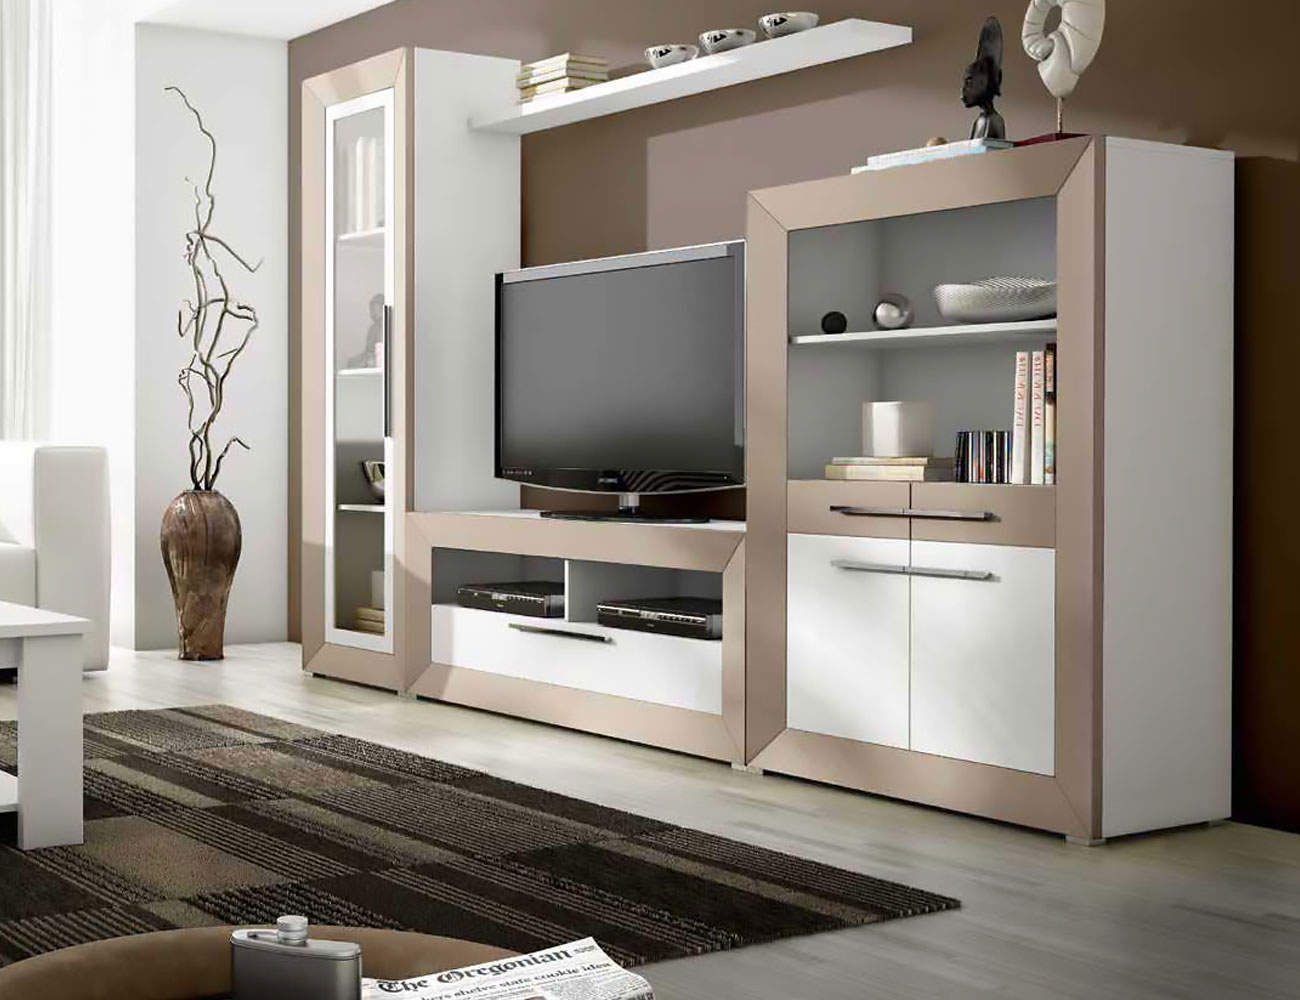 Mueble de sal n moderno en blanco con vis n 2400 for Muebles de salon modernos en color roble